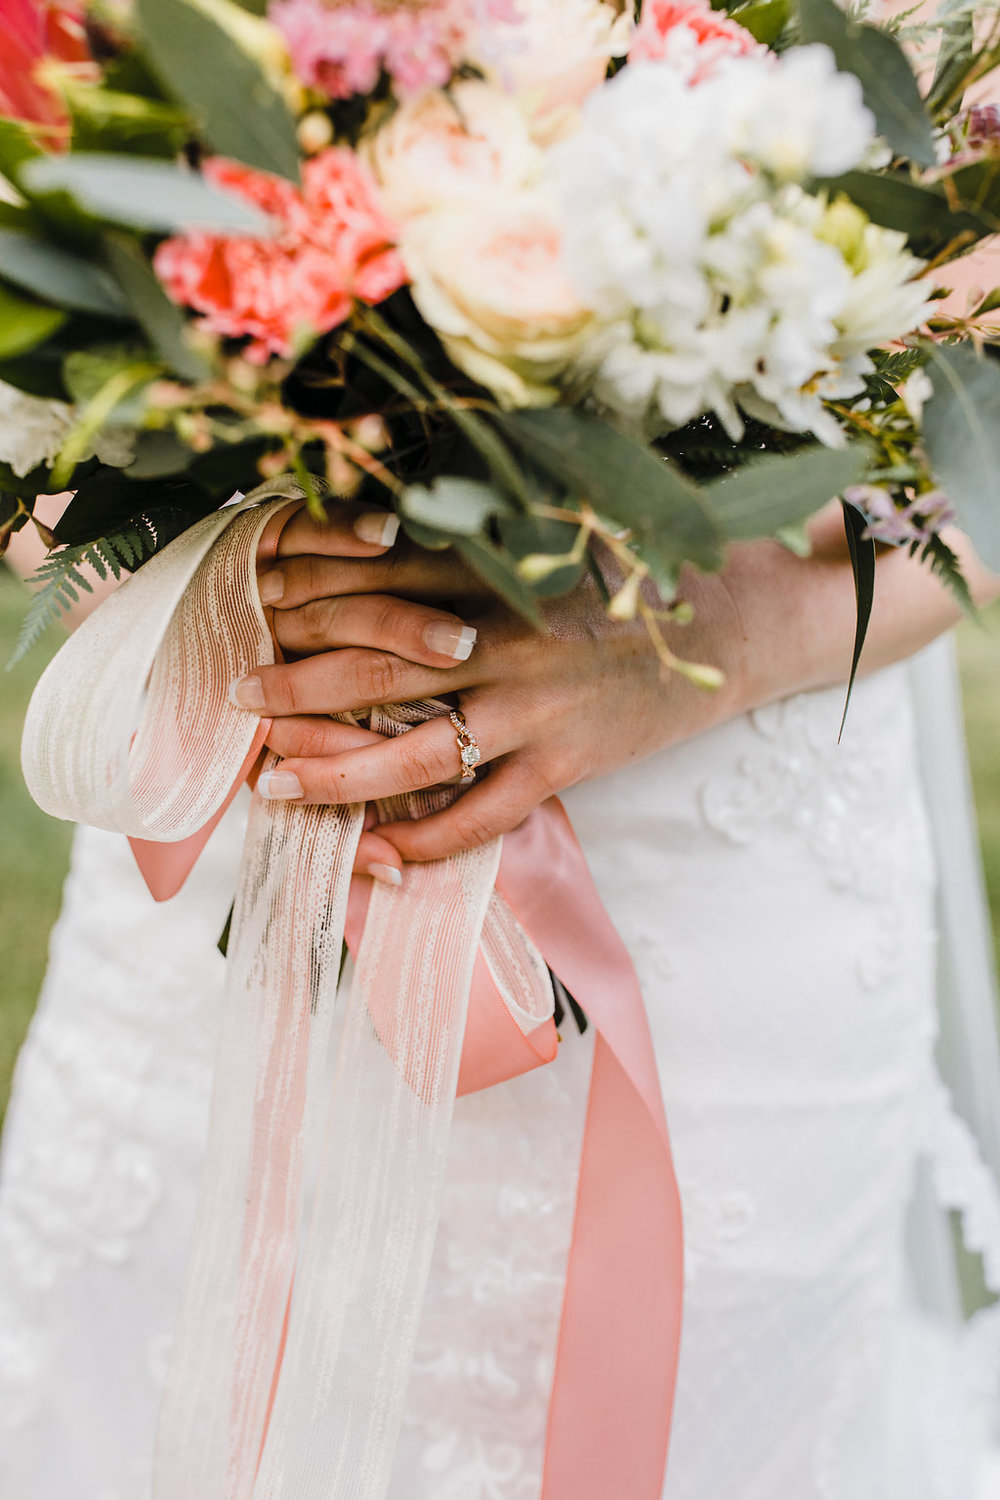 rose gold wedding ring details photography